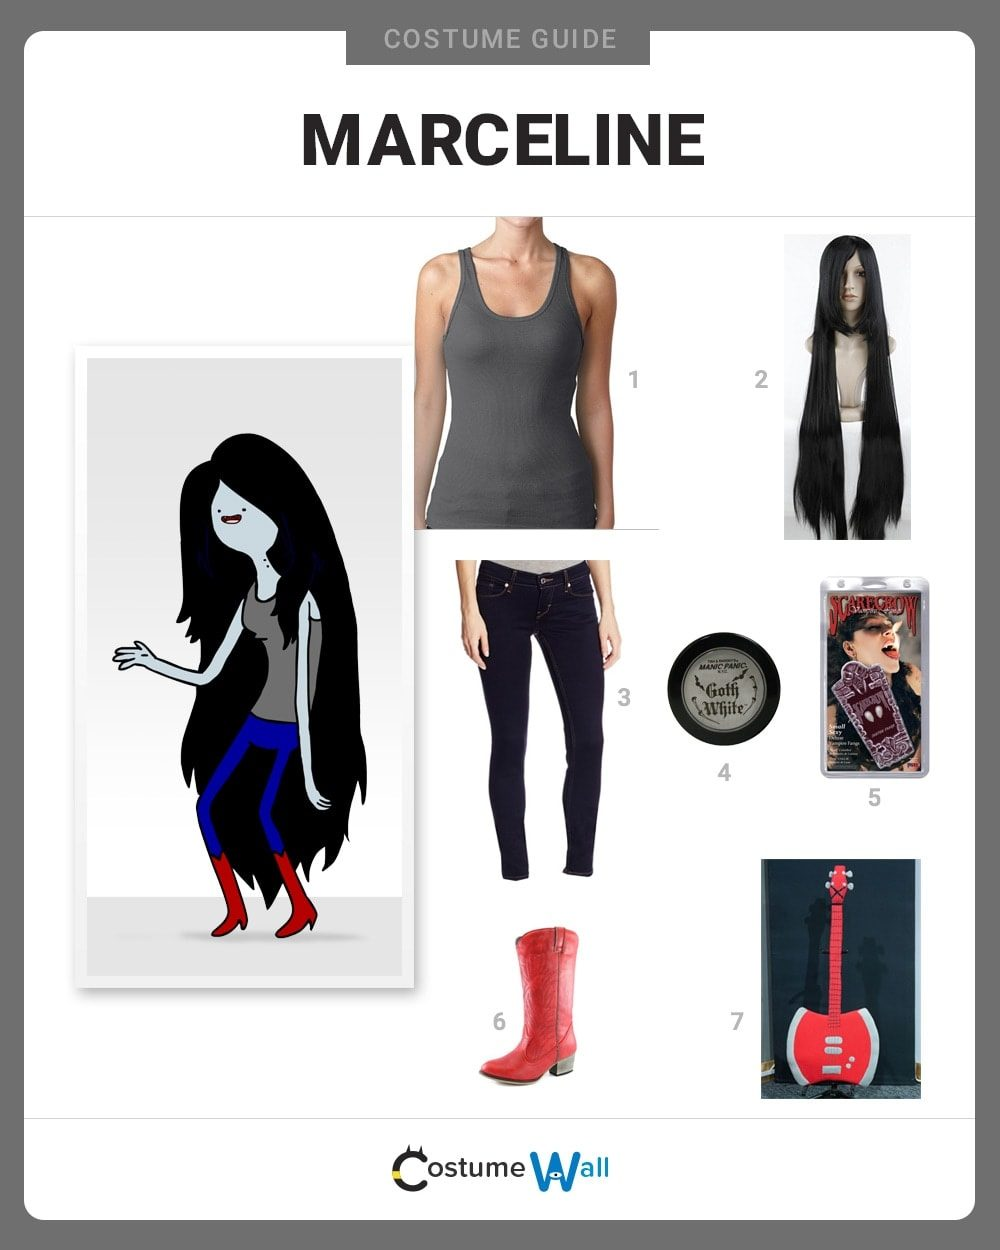 dress like marceline costume halloween and cosplay guides